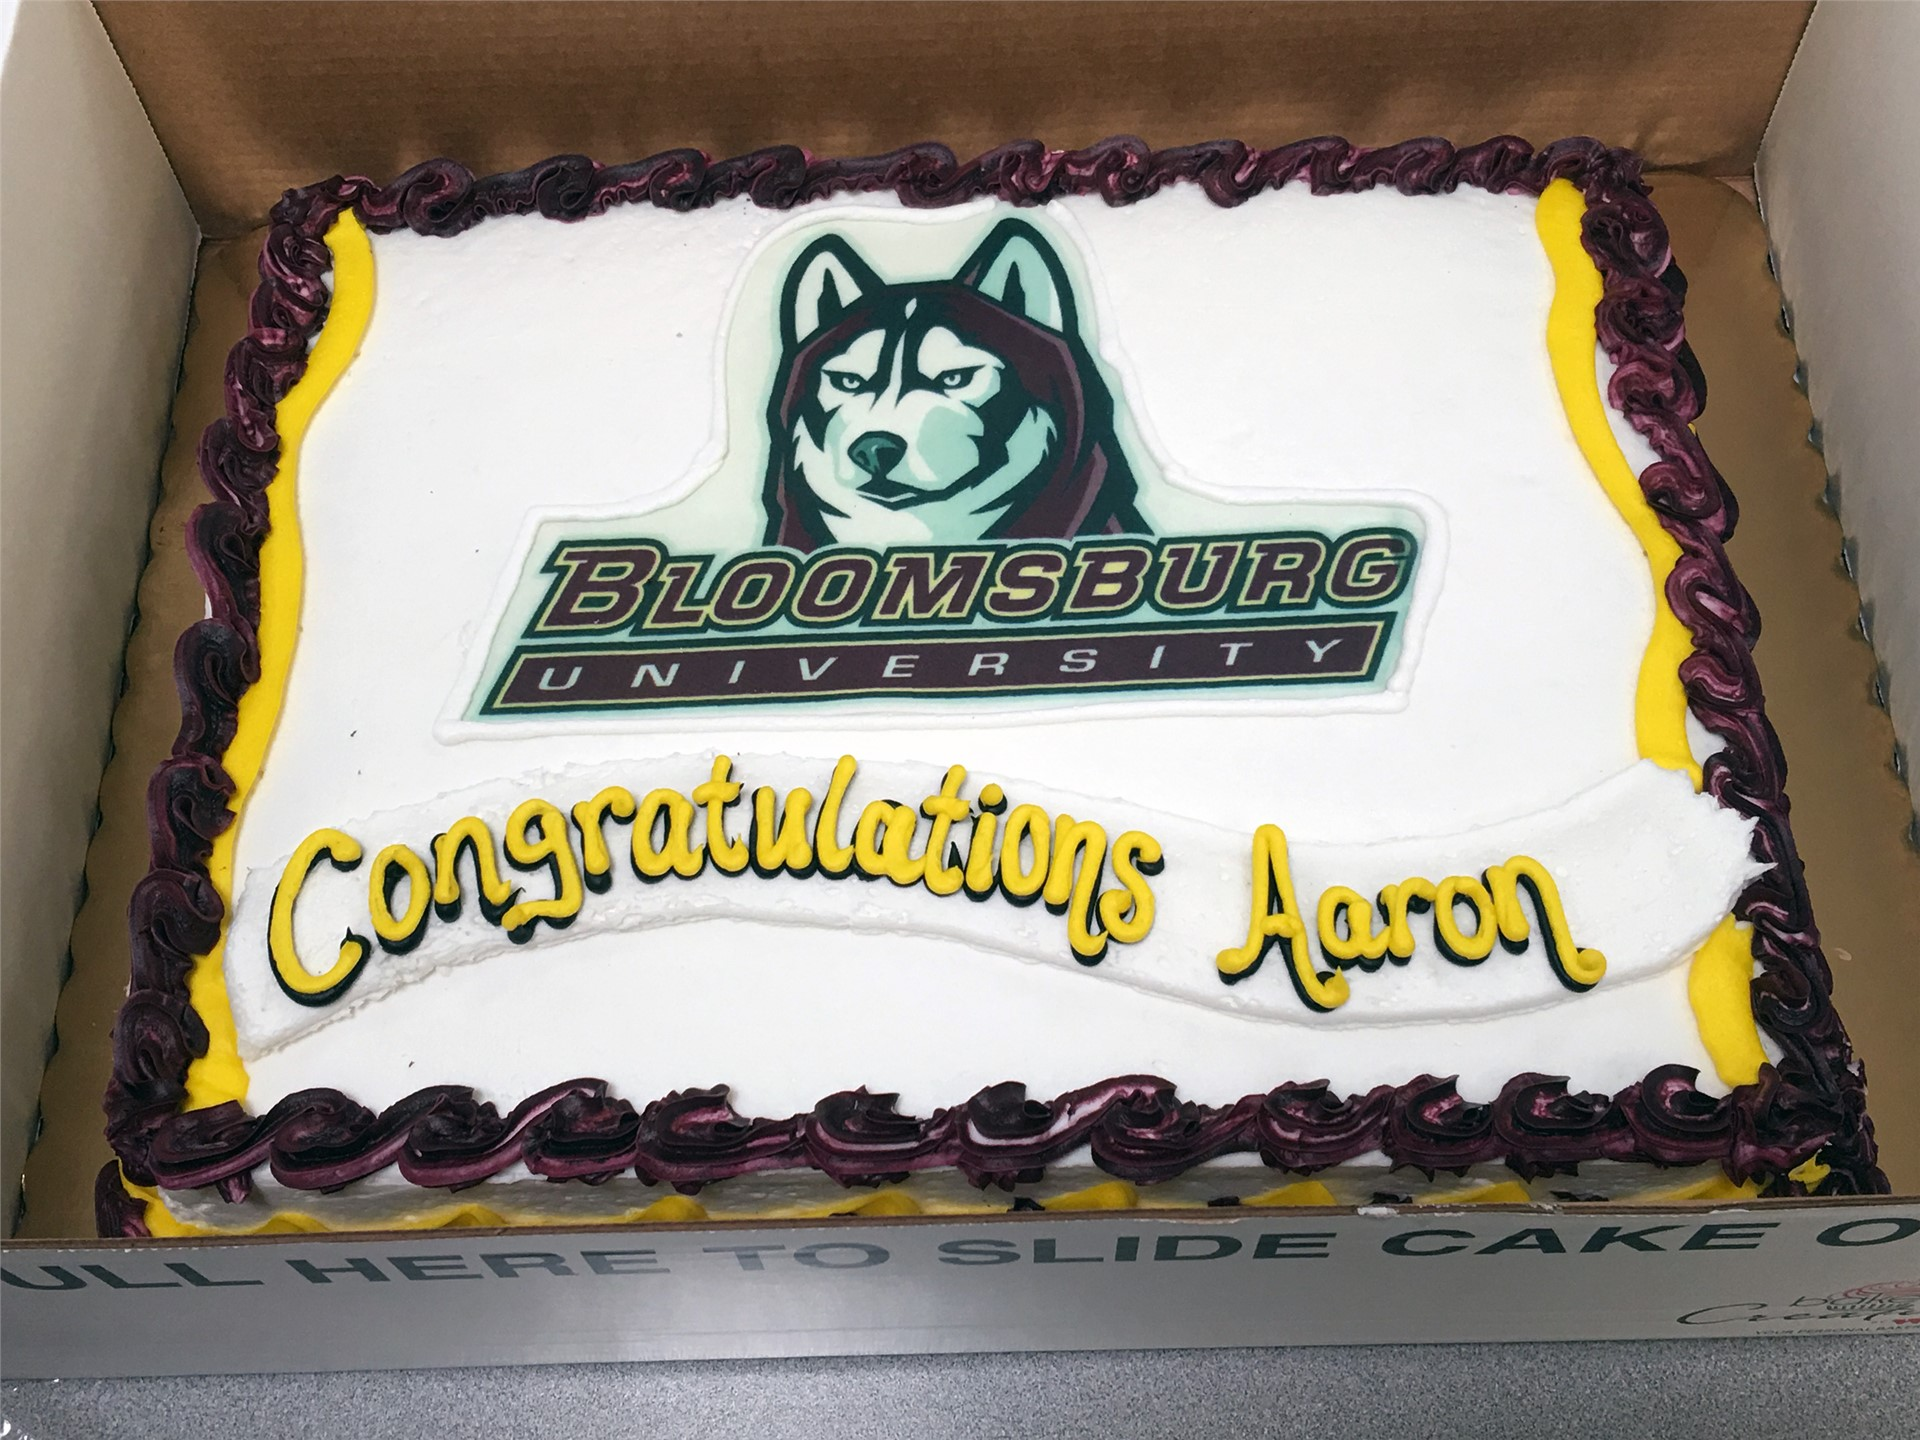 cake that says bloomsburg university congratulations aaron